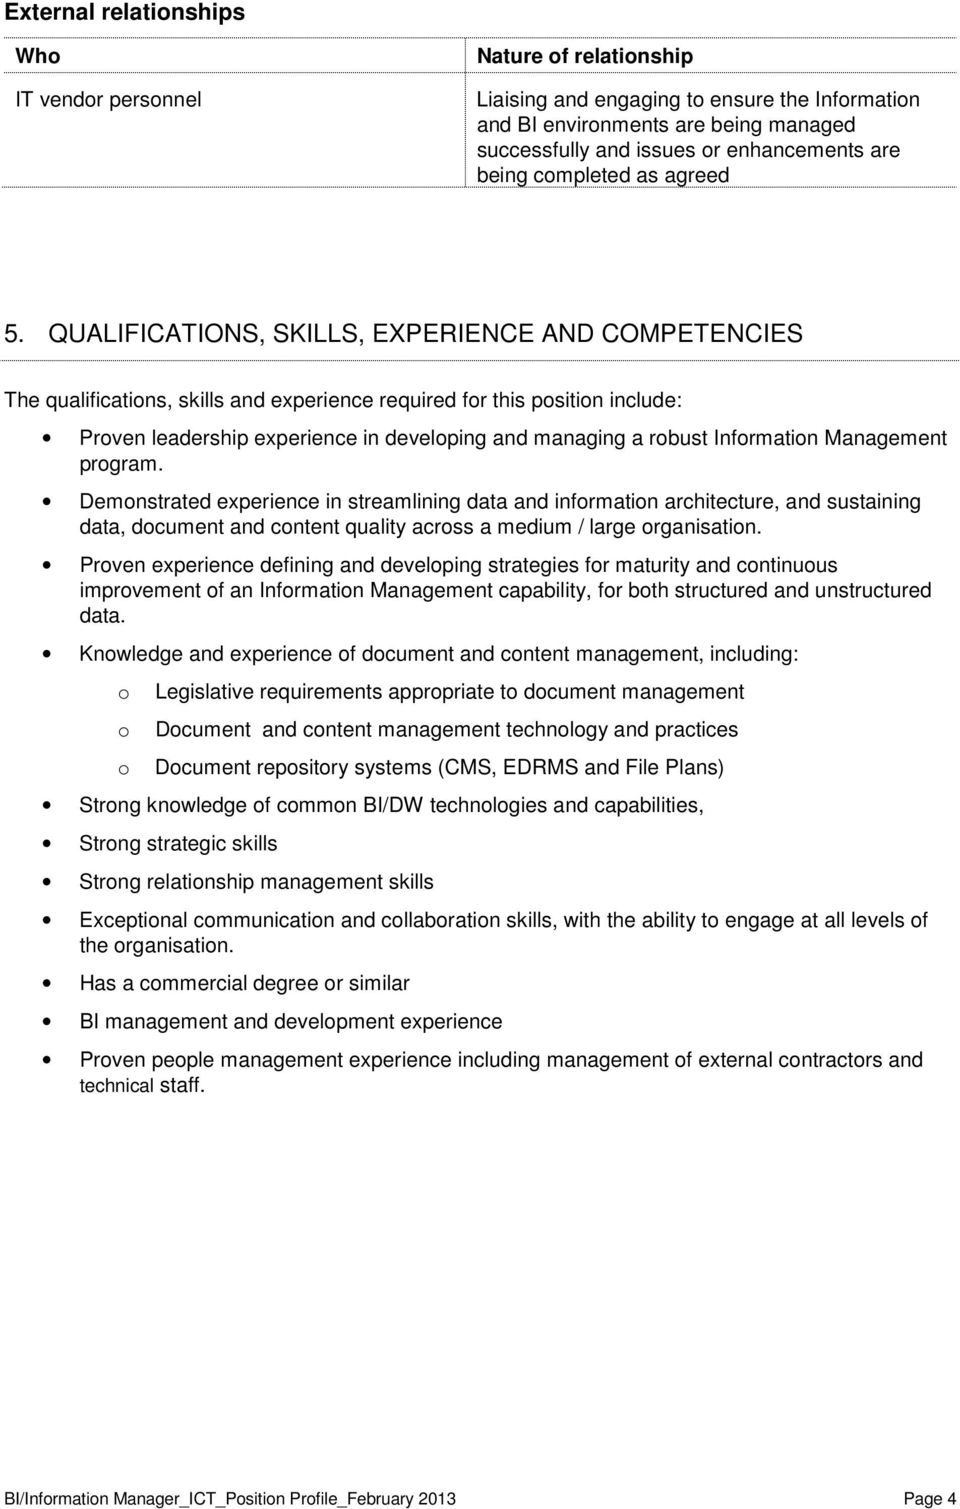 QUALIFICATIONS, SKILLS, EXPERIENCE AND COMPETENCIES The qualificatins, skills and experience required fr this psitin include: Prven leadership experience in develping and managing a rbust Infrmatin